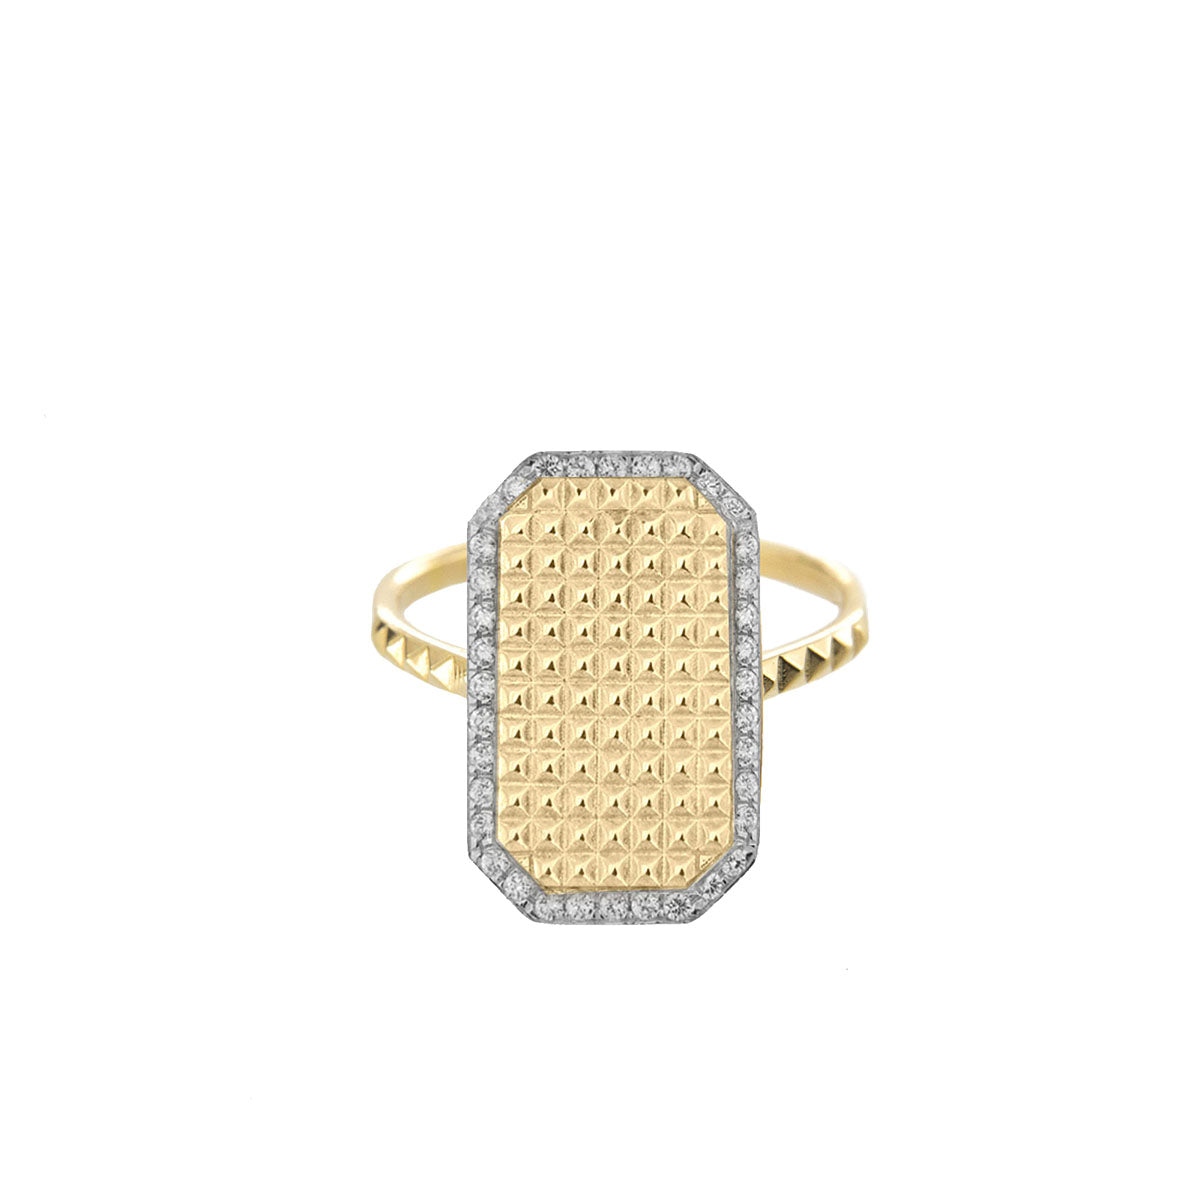 Rings - Ring stud texture - 2 | Rue des Mille